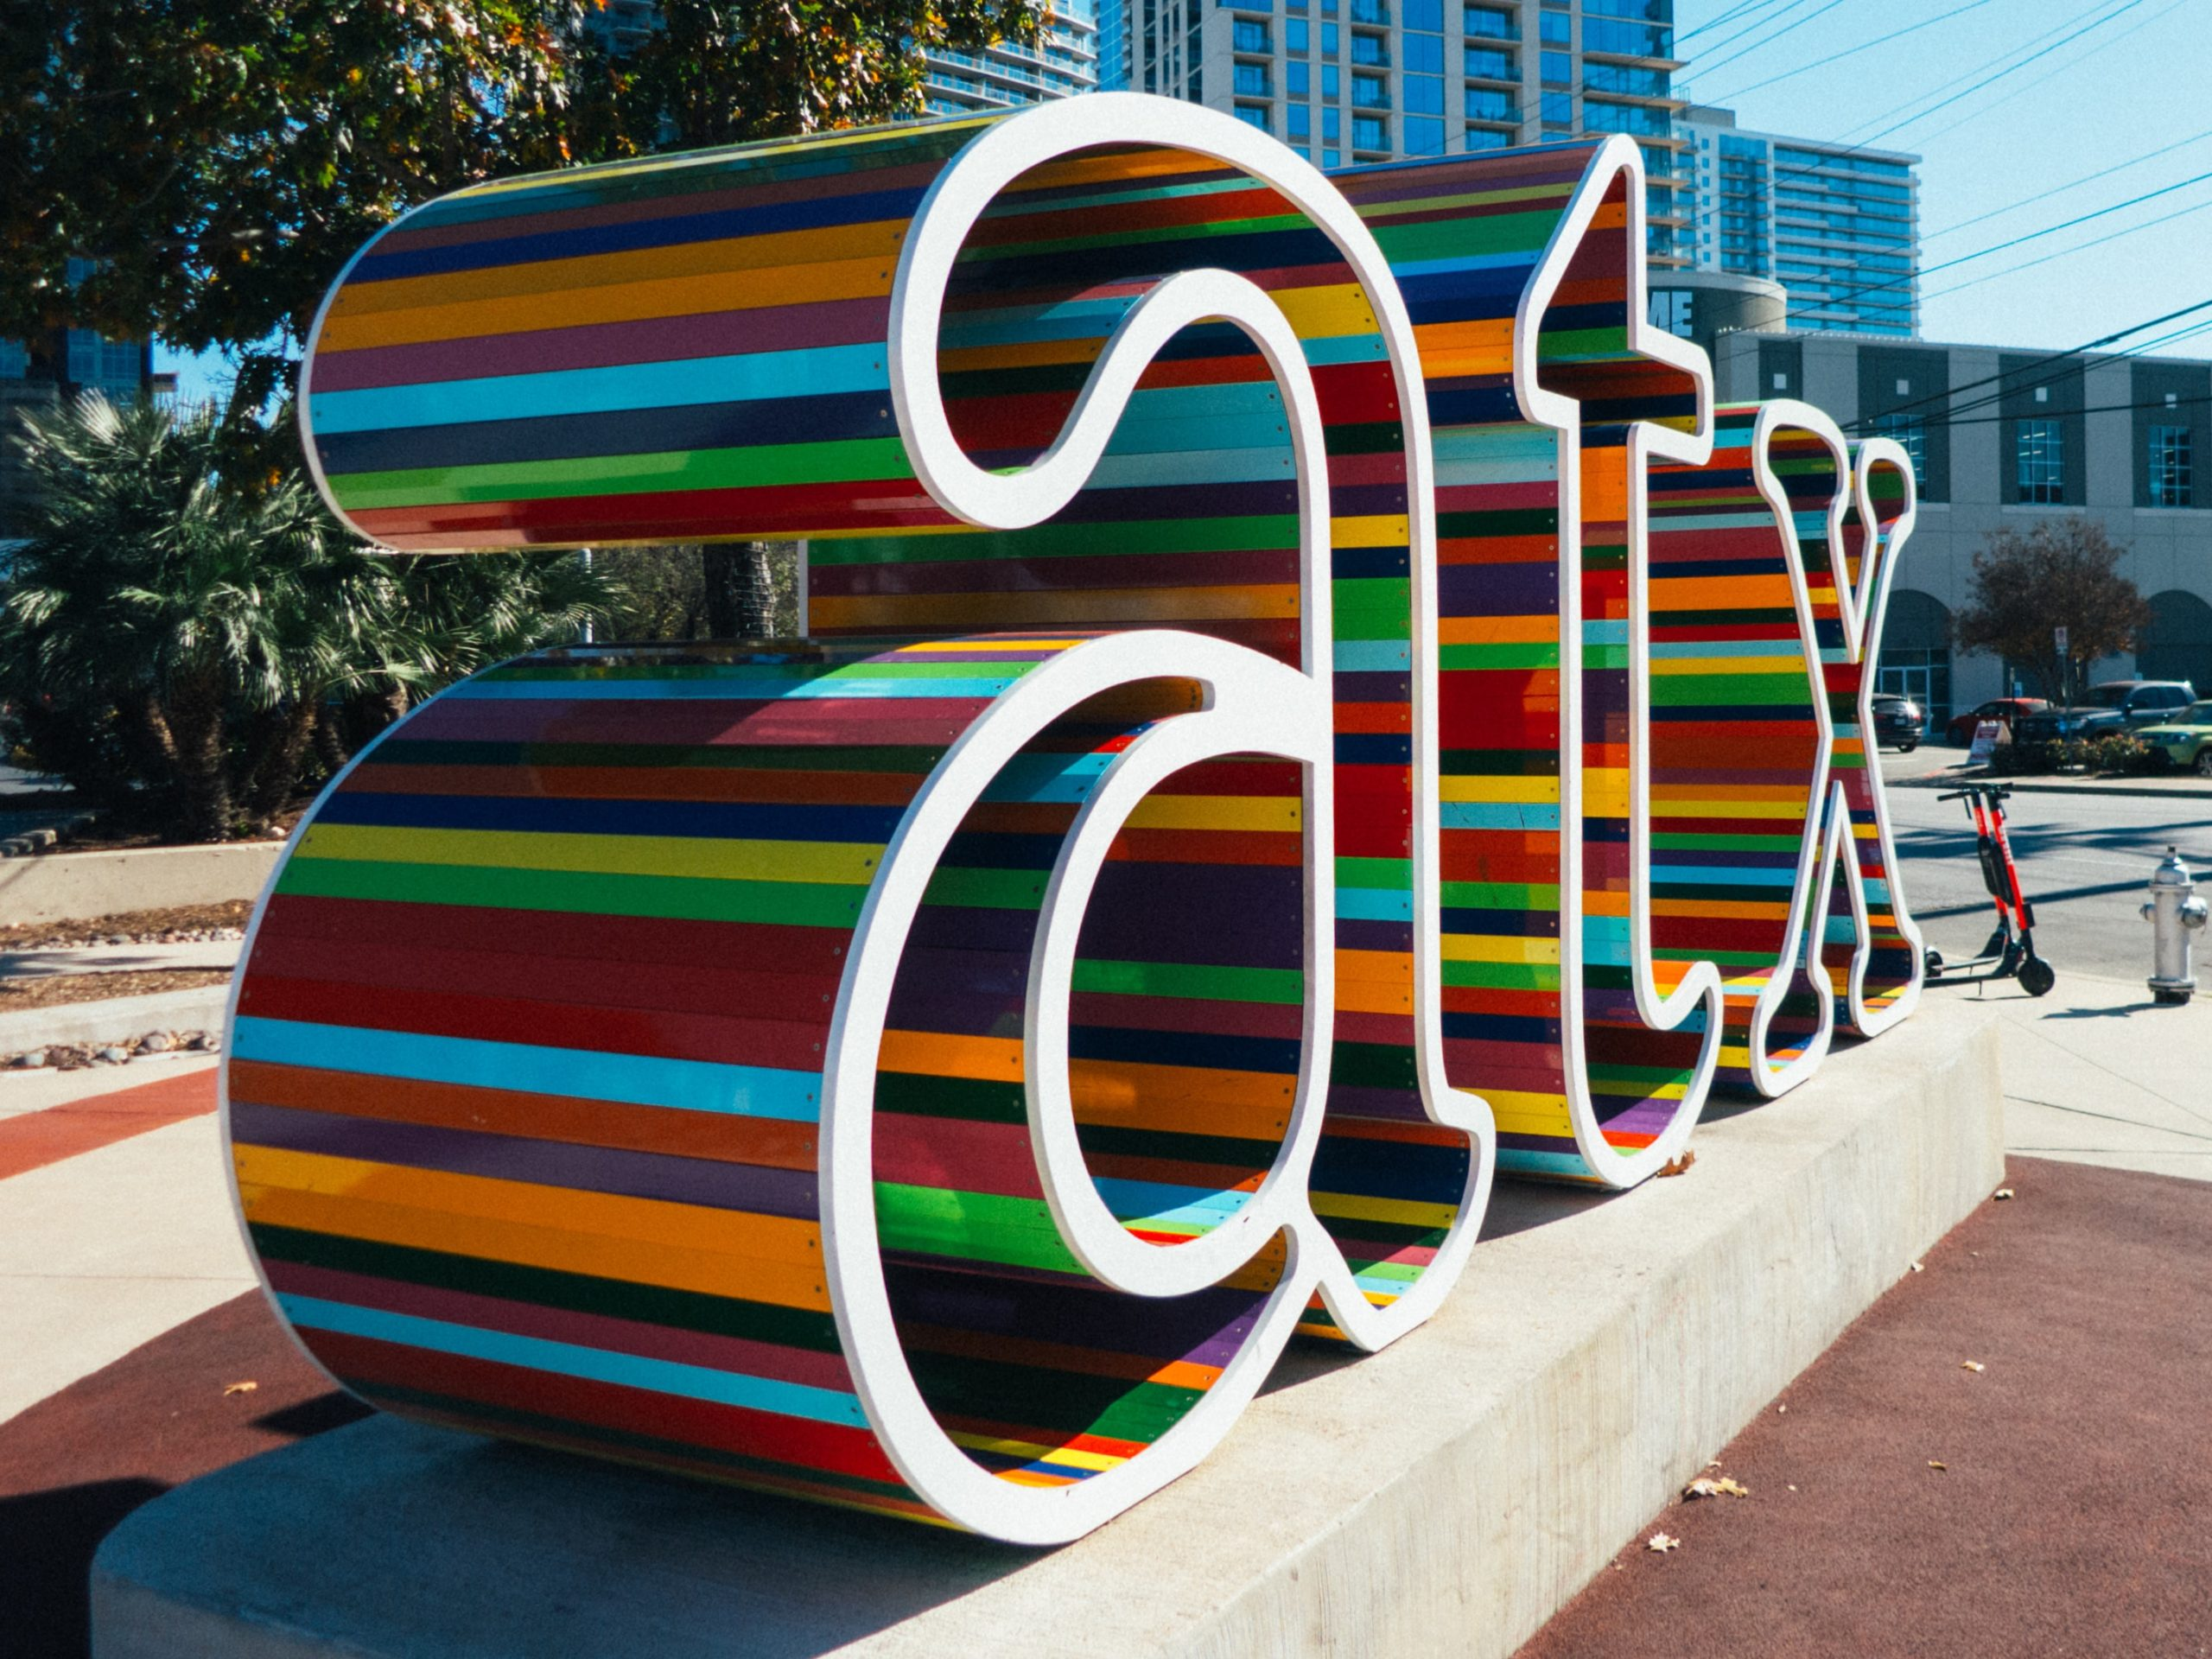 colorful, lowercase atx letters in downtown Austin, Texas